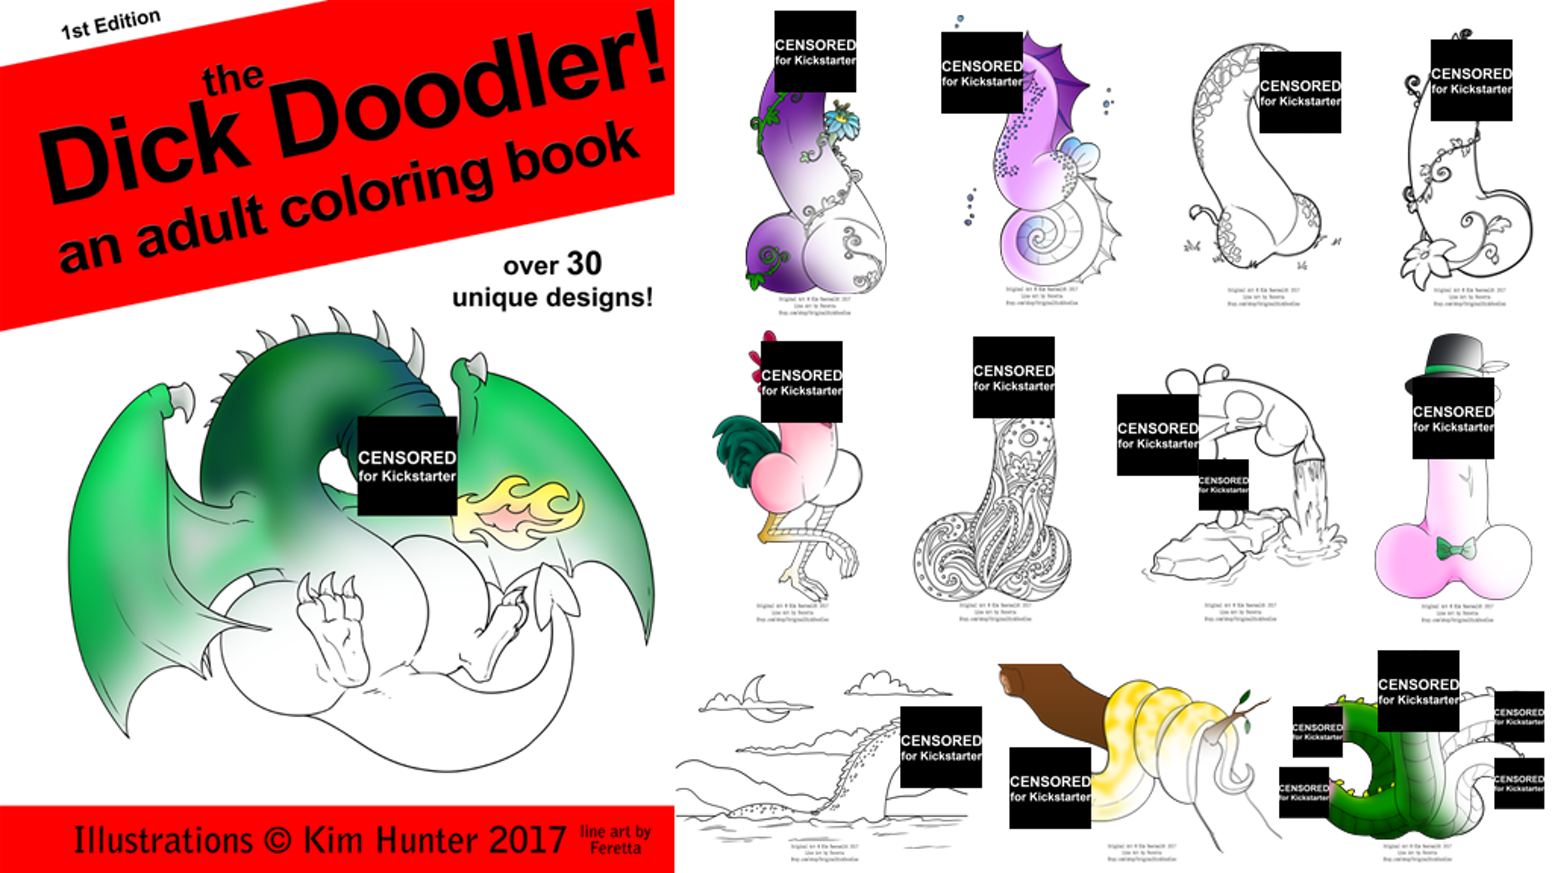 The dick doodler a unique adult coloring book by kim kickstarter